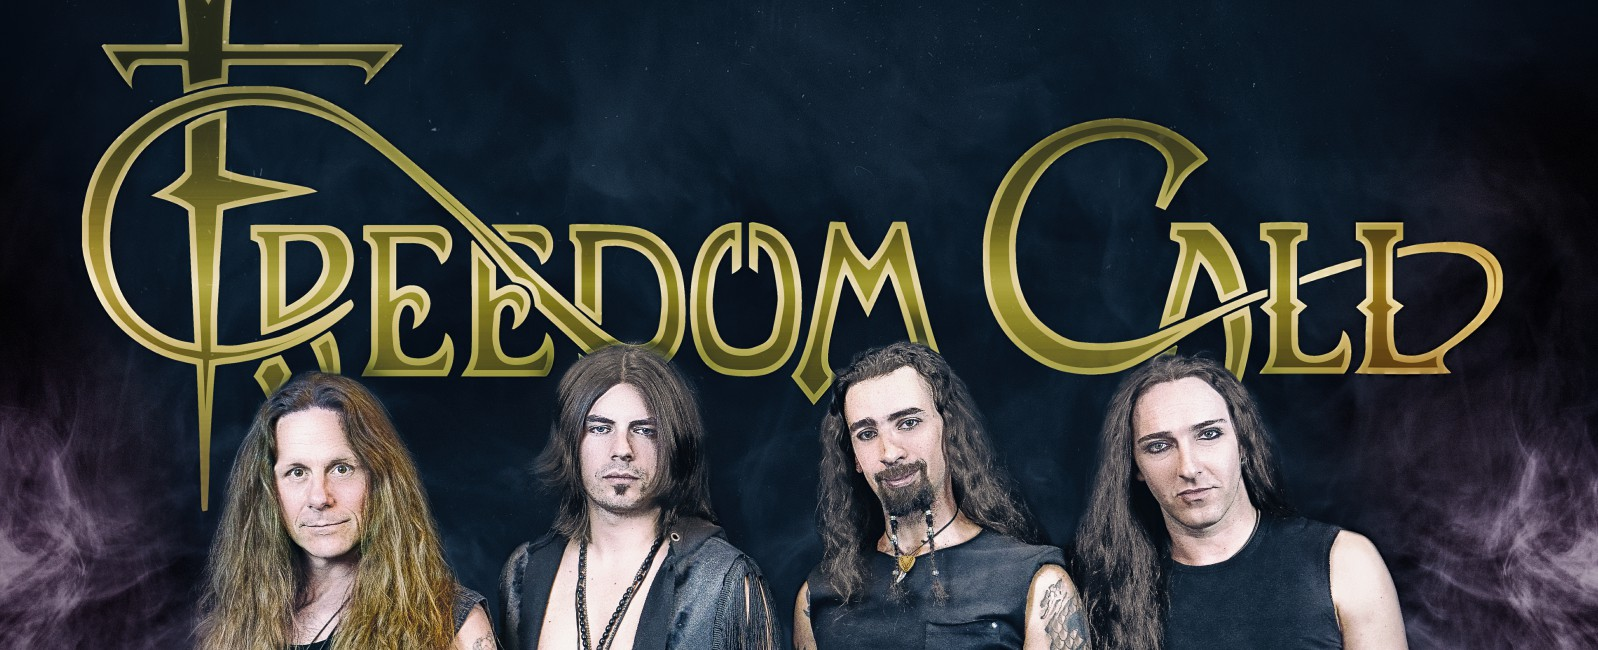 freedom-call-promo-2019crop